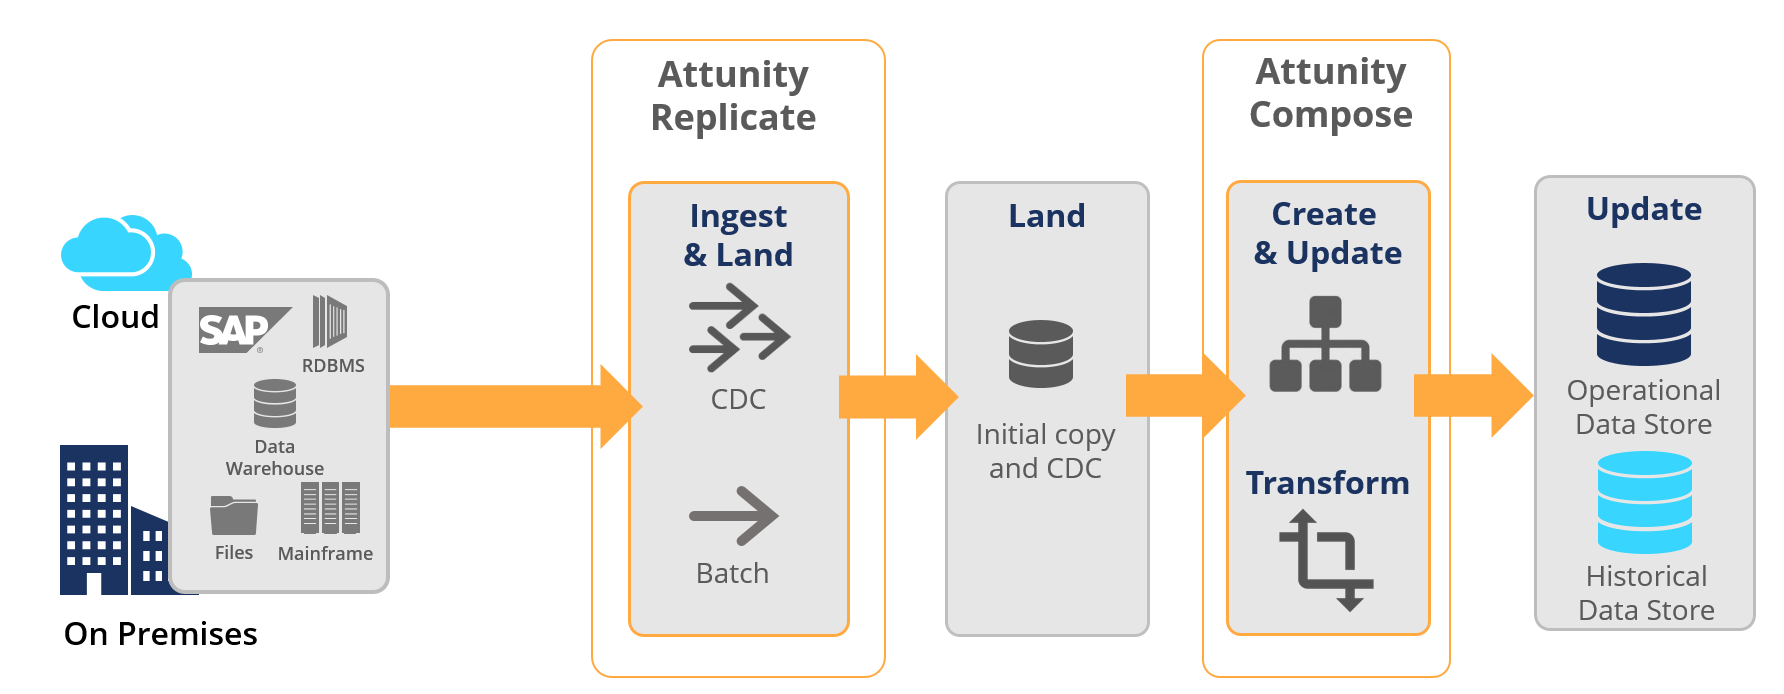 Attunity Data Lake